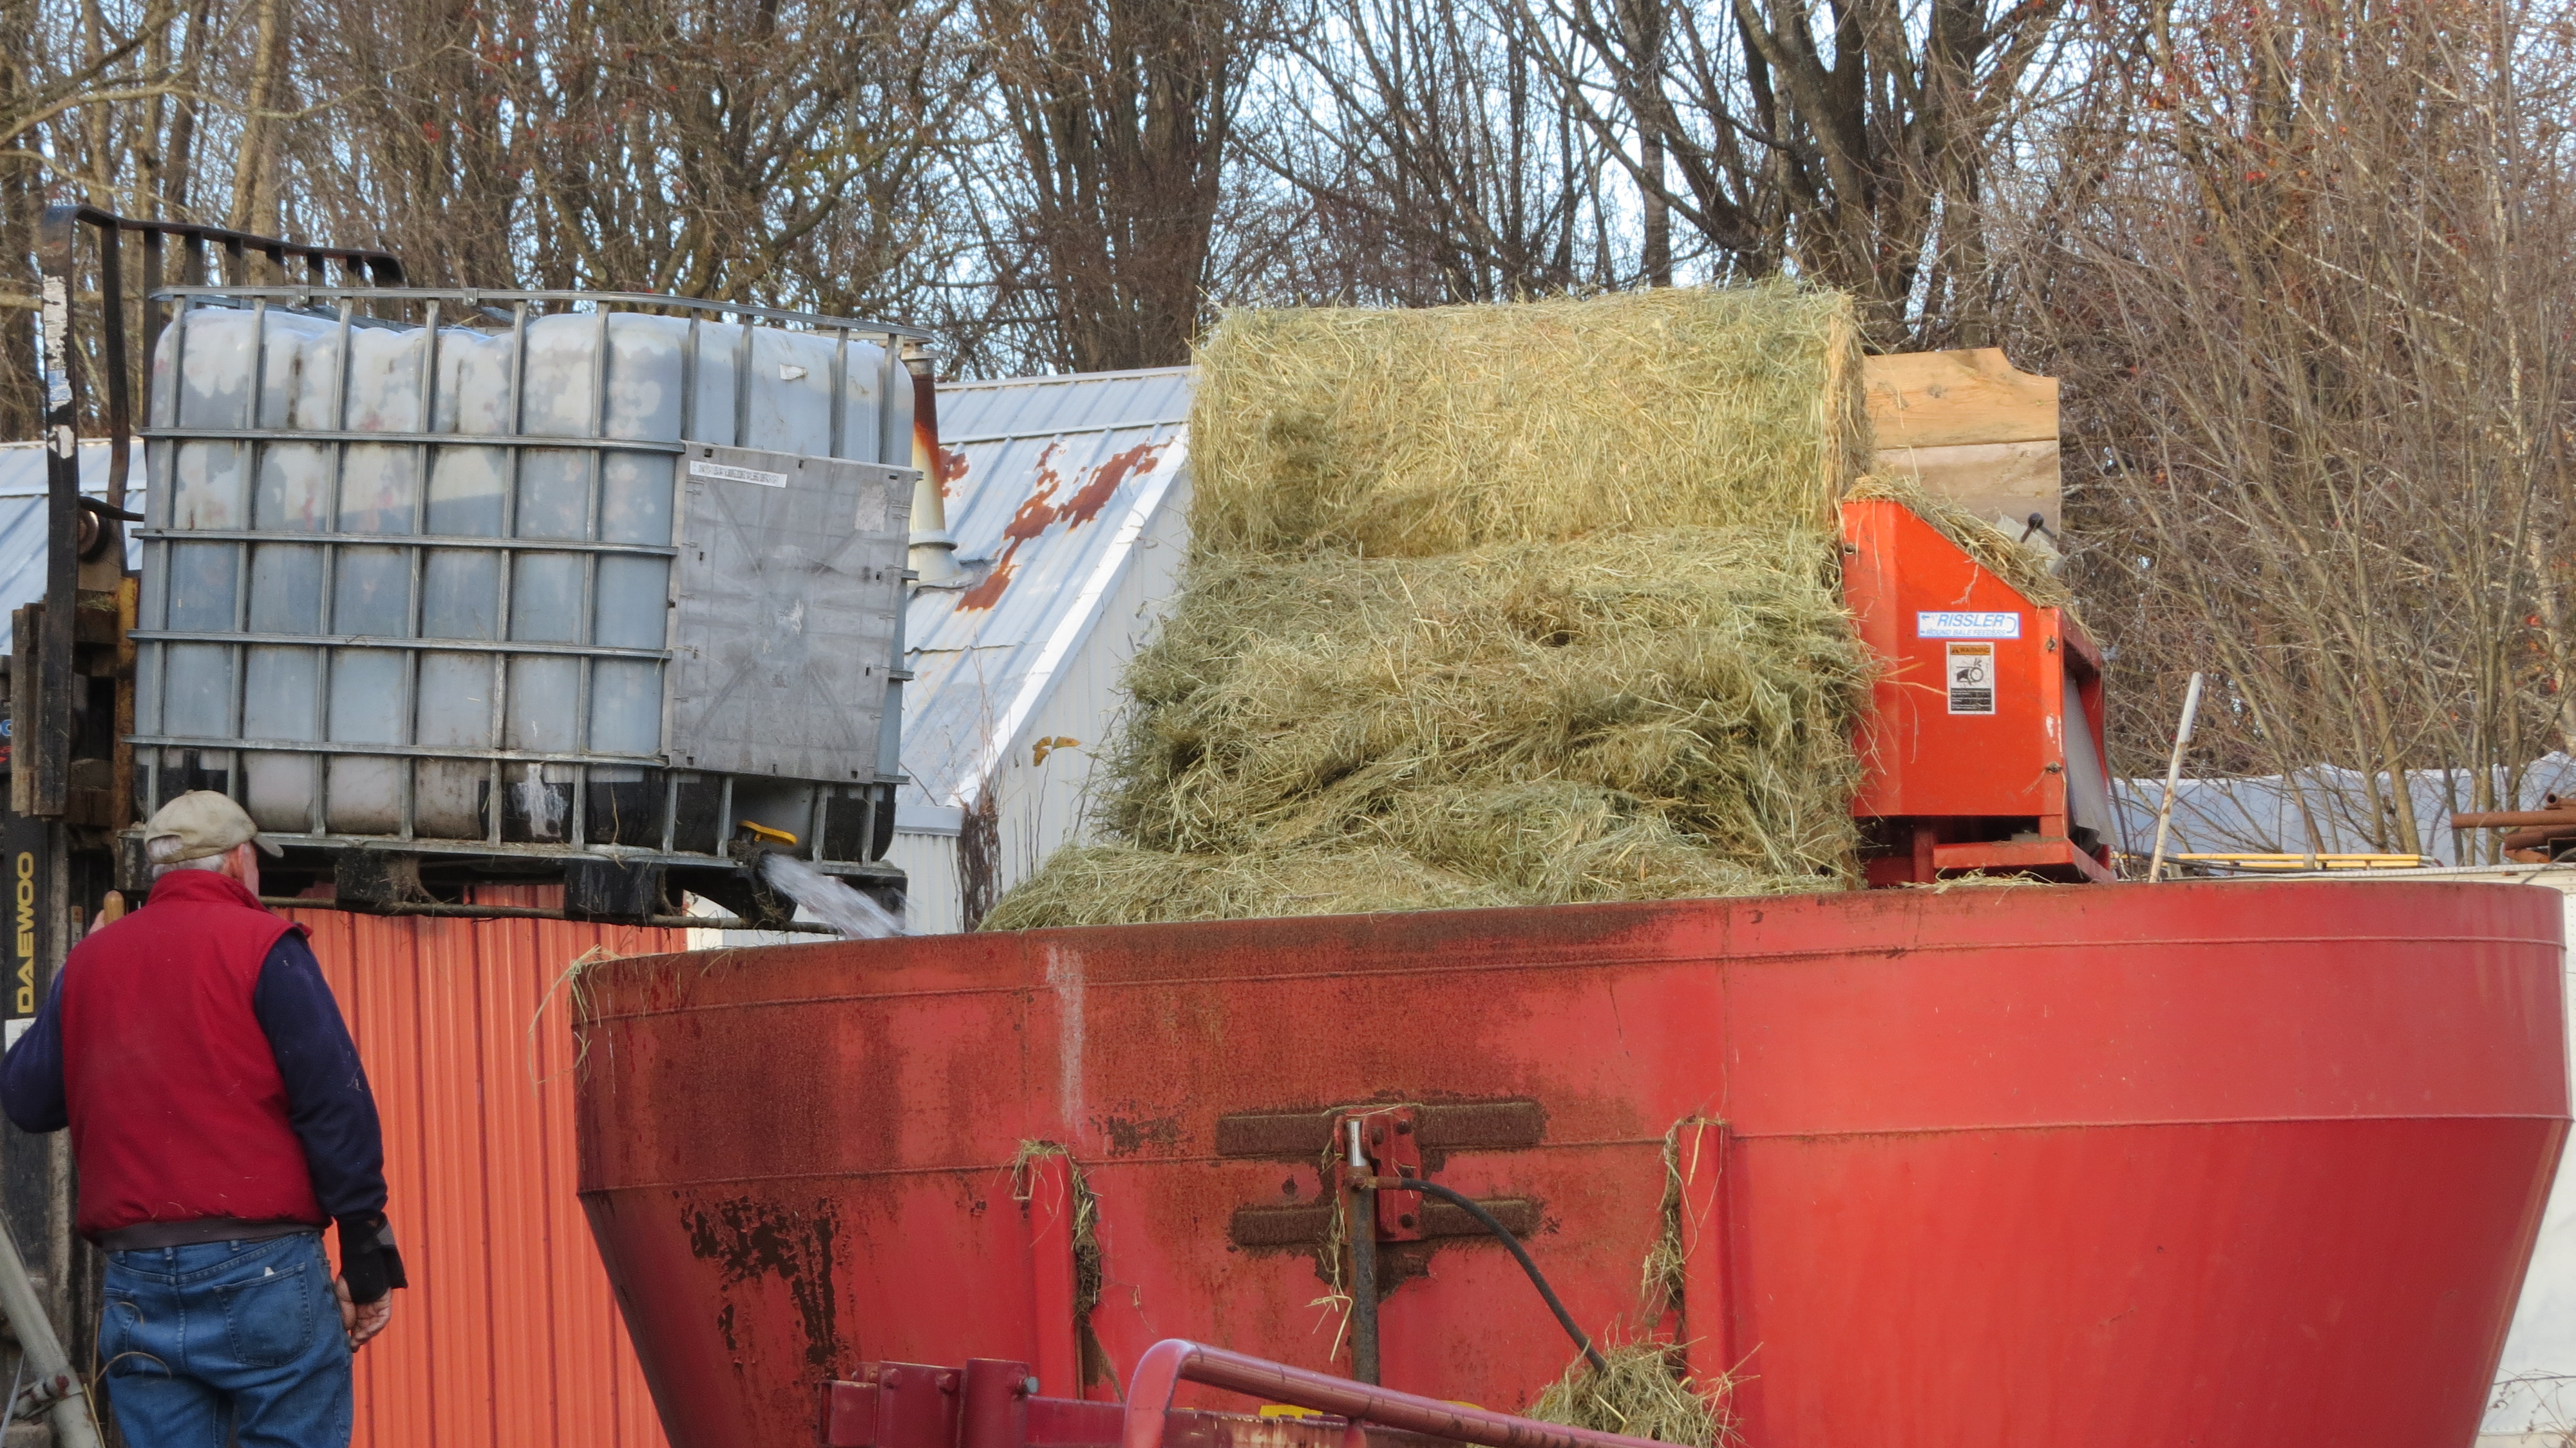 auction hay sold wagon november feeder apache image bale item round for